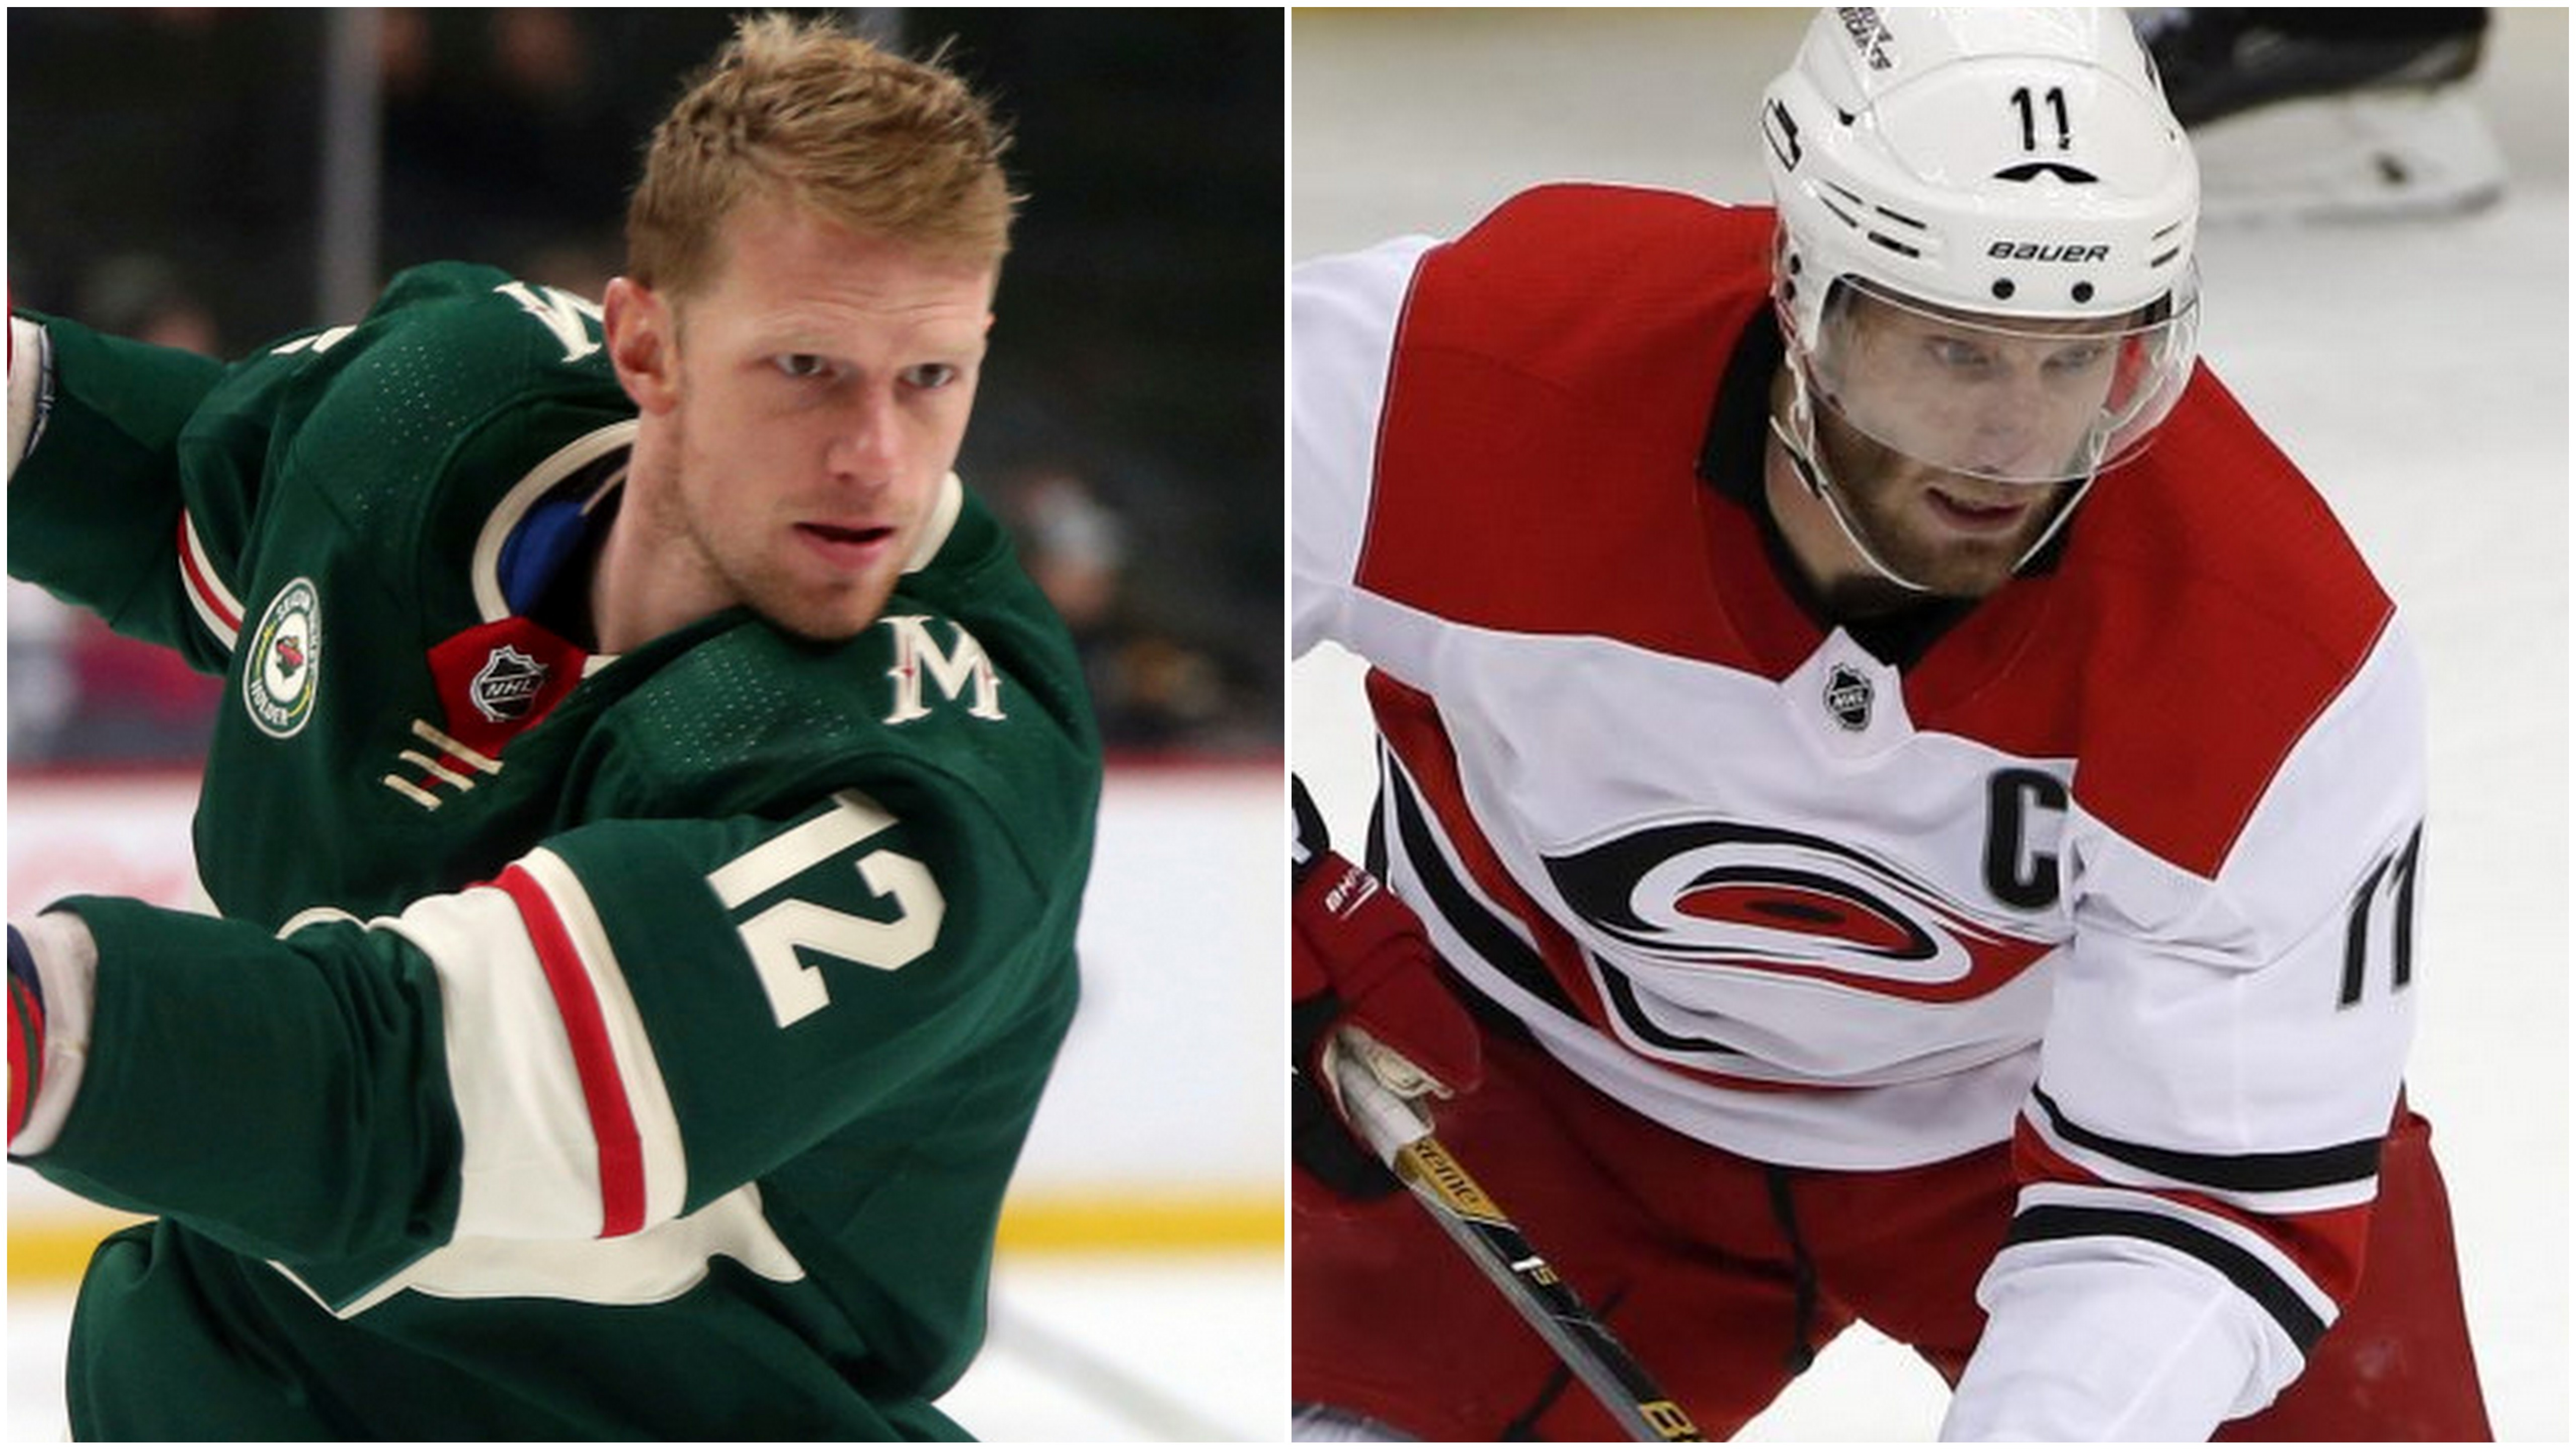 Wild: Staal Brothers Meet At Difficult Time For Family